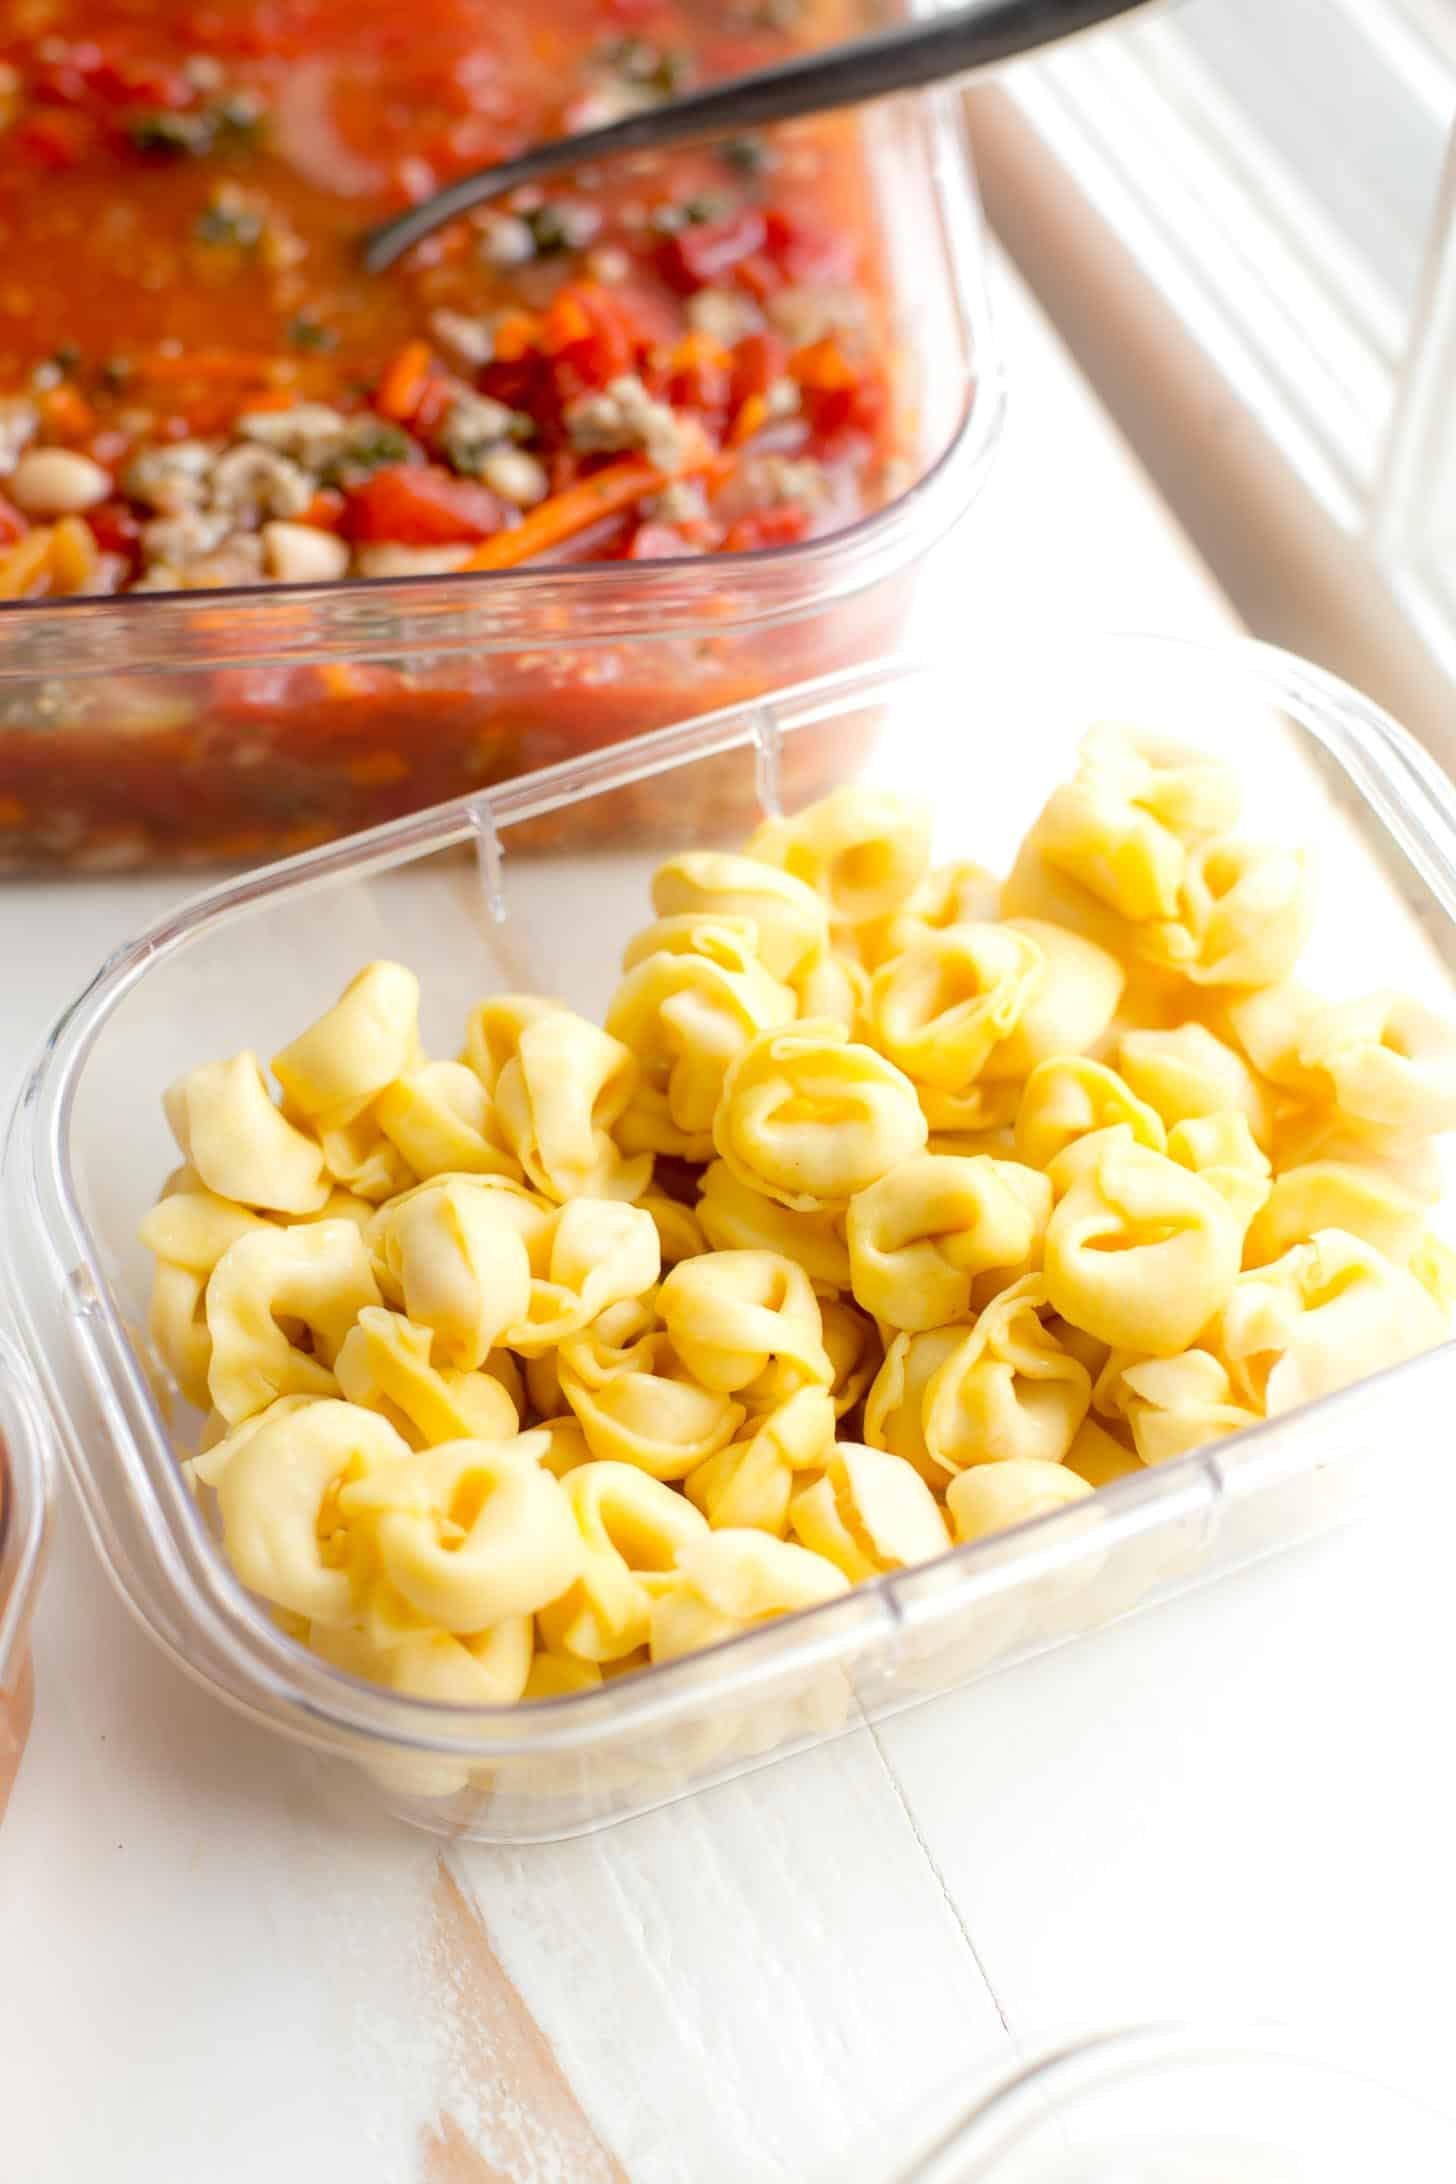 cooked tortellini in a plastic container